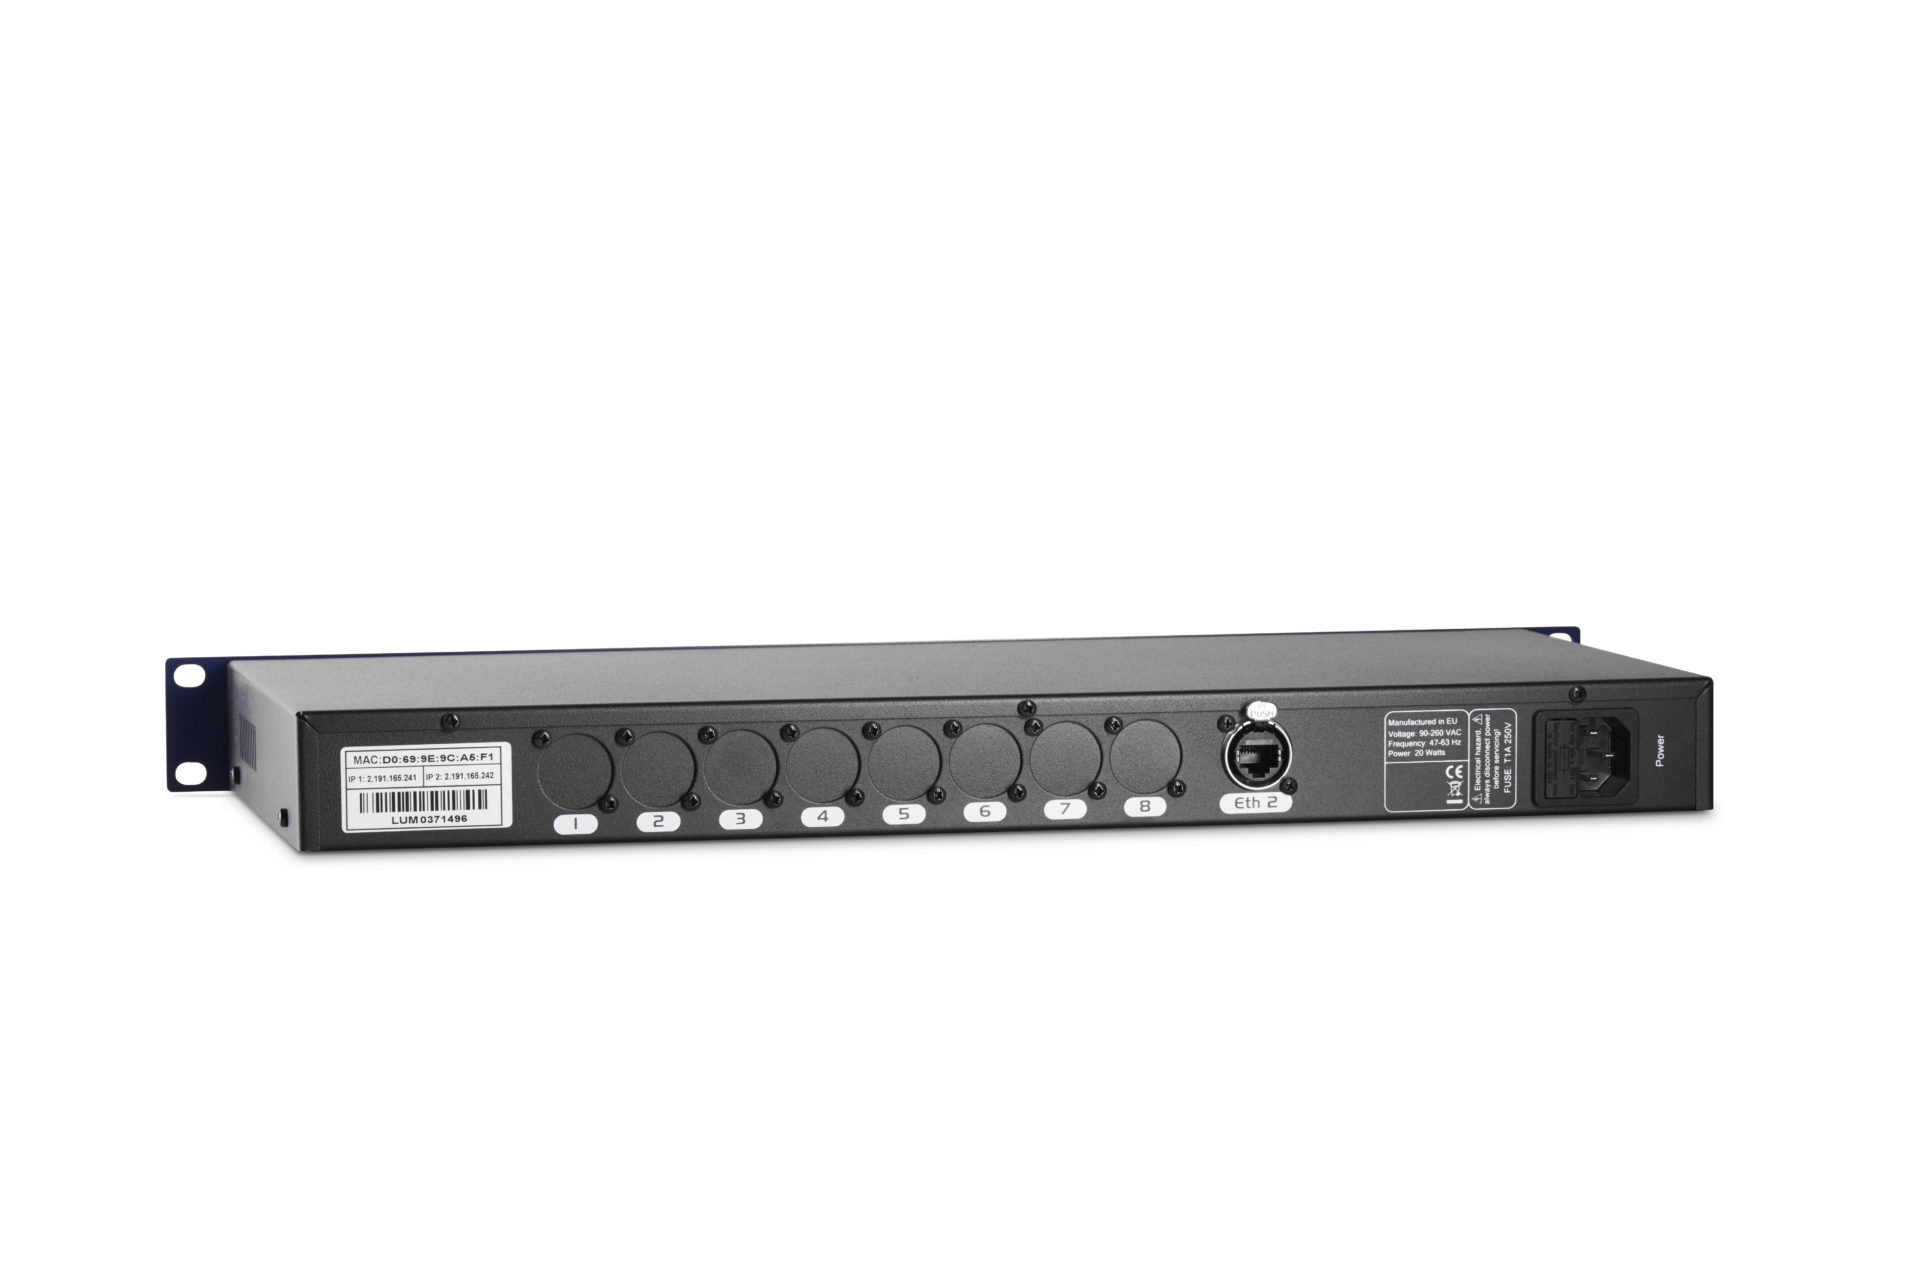 Dmx8 Luminex 4 Way Ethernet Switch Mkii Back